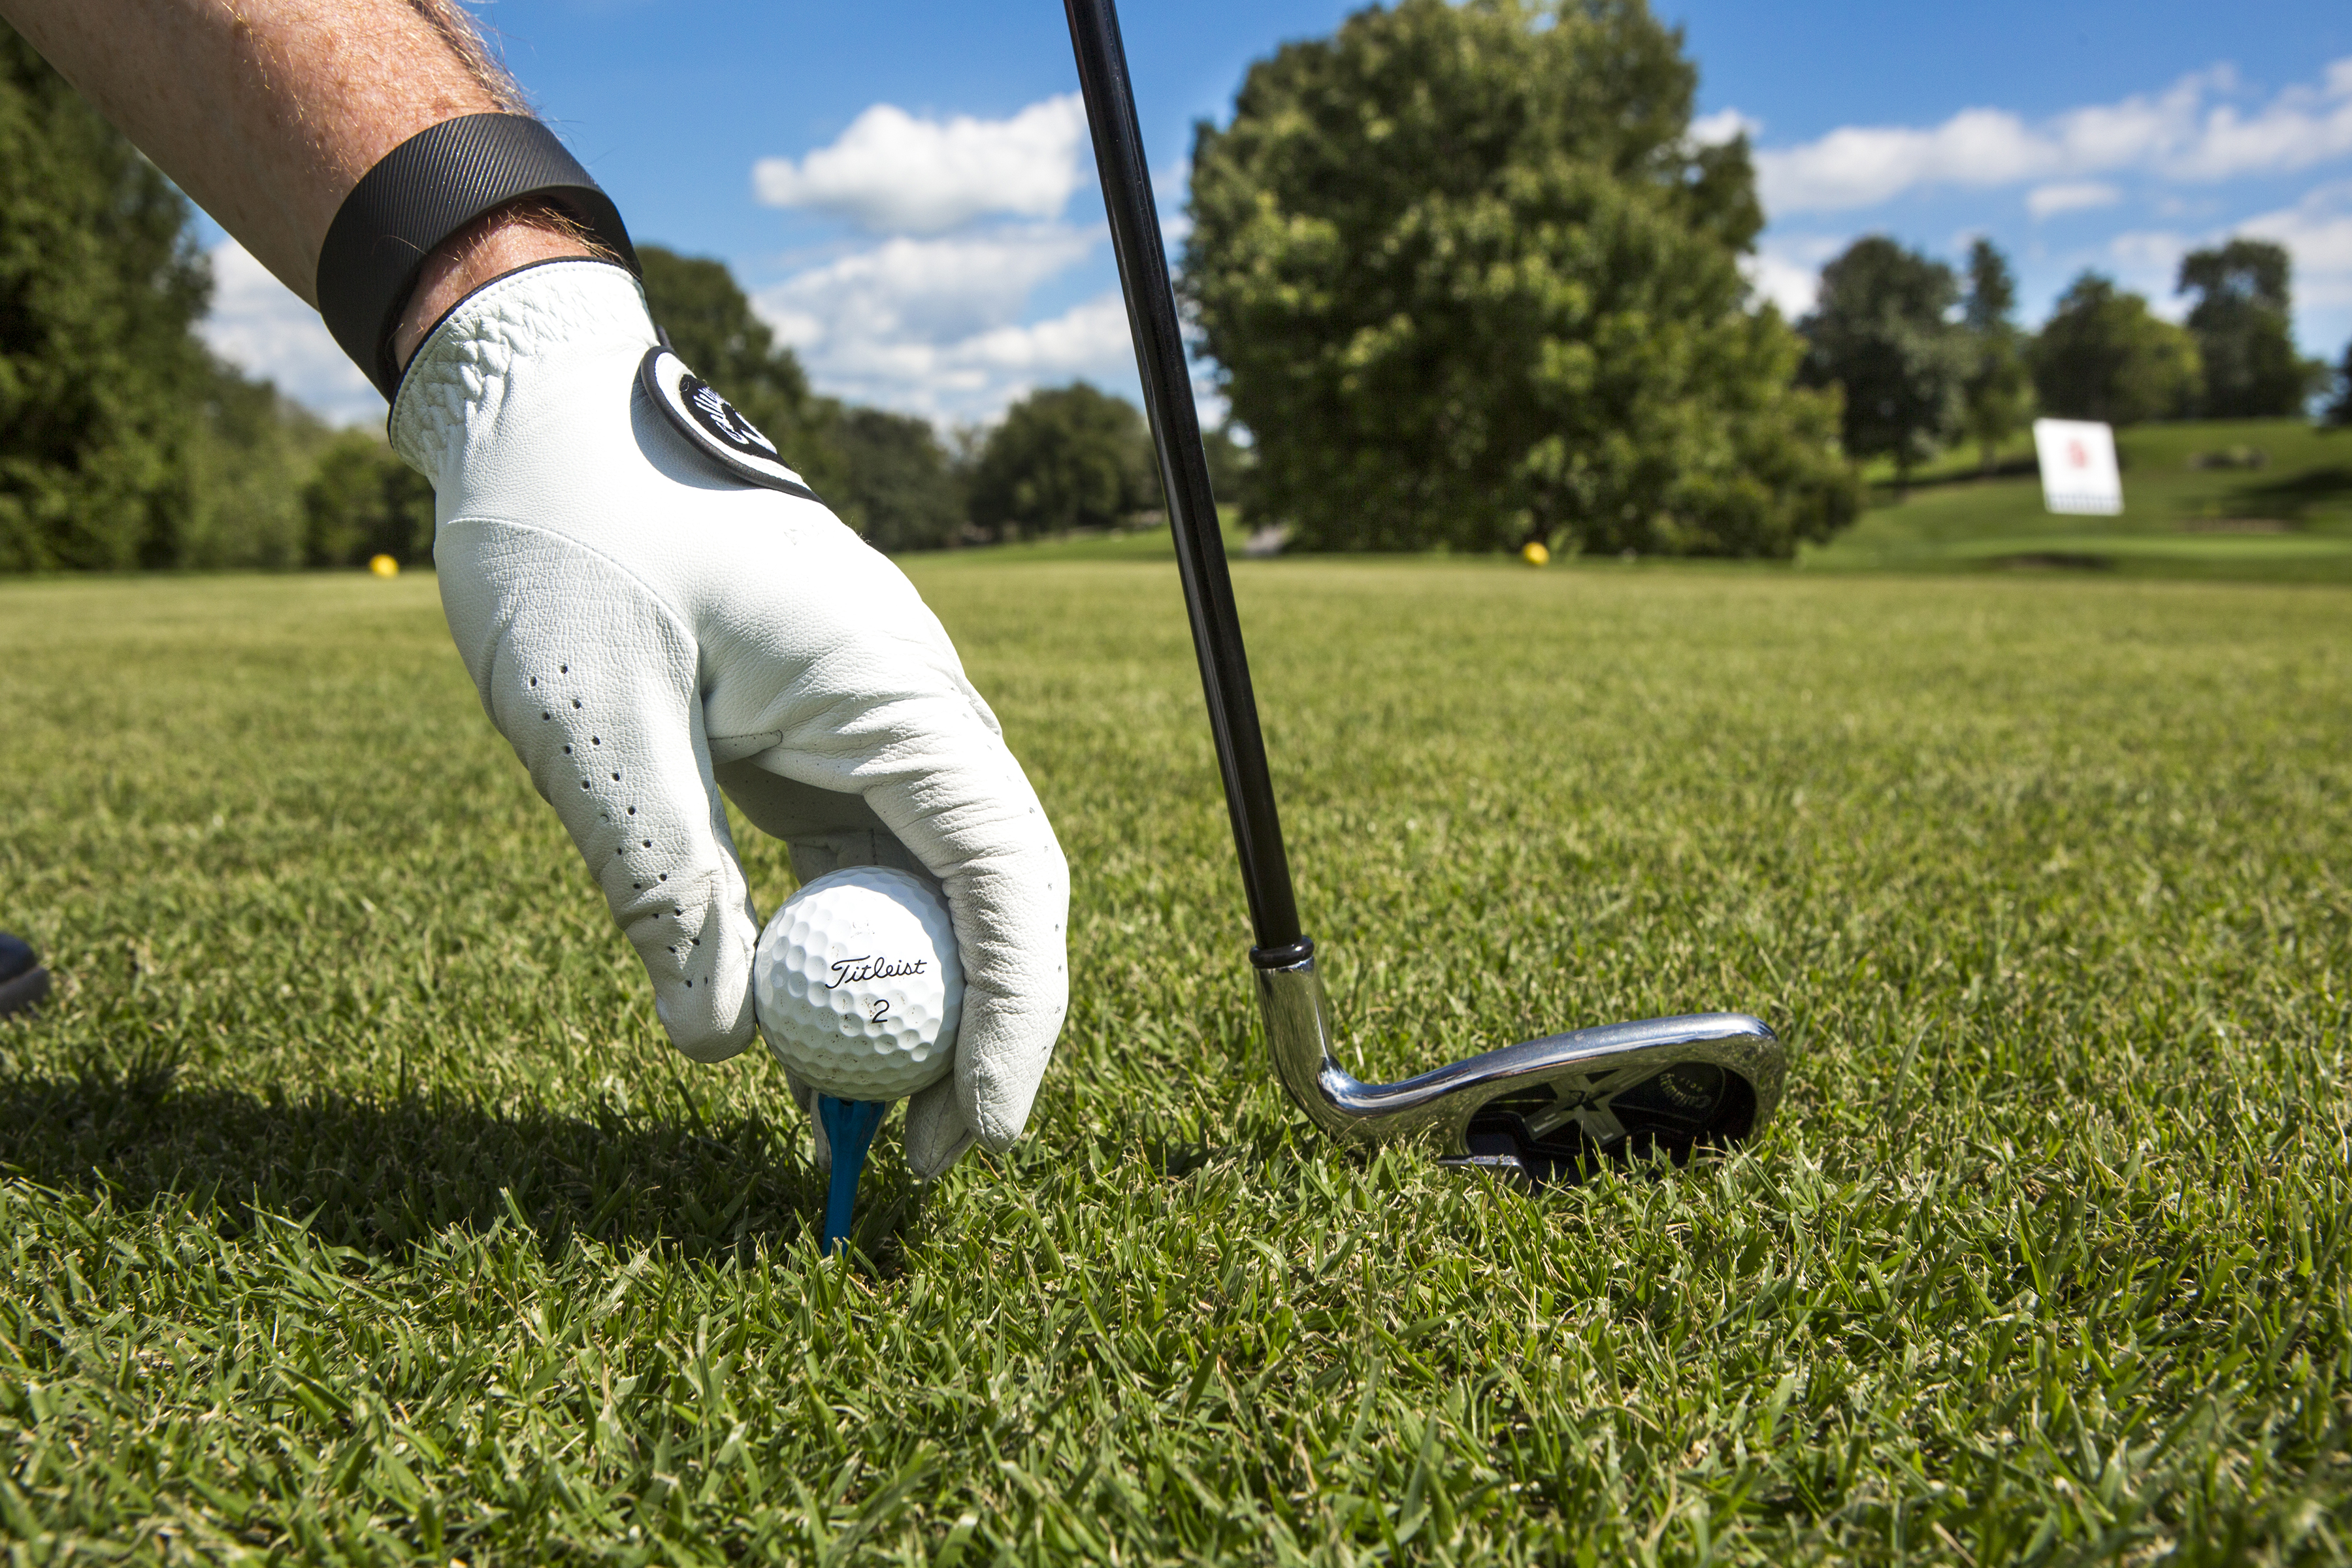 Mississauga reopens city-owned golf courses | insauga.com